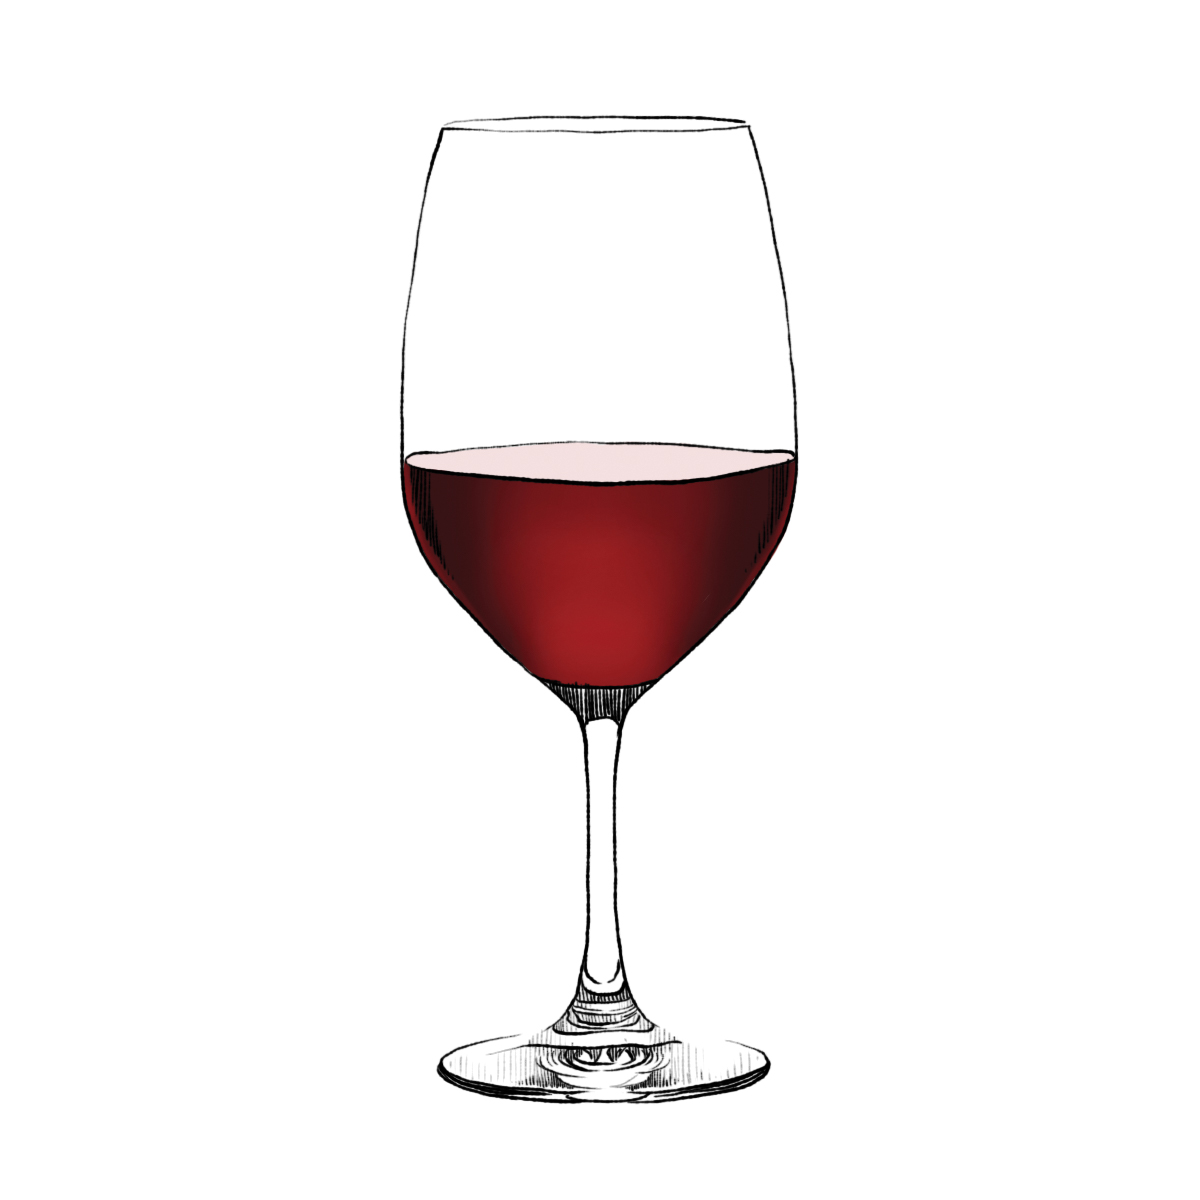 noli-soli-wine-glasses-red